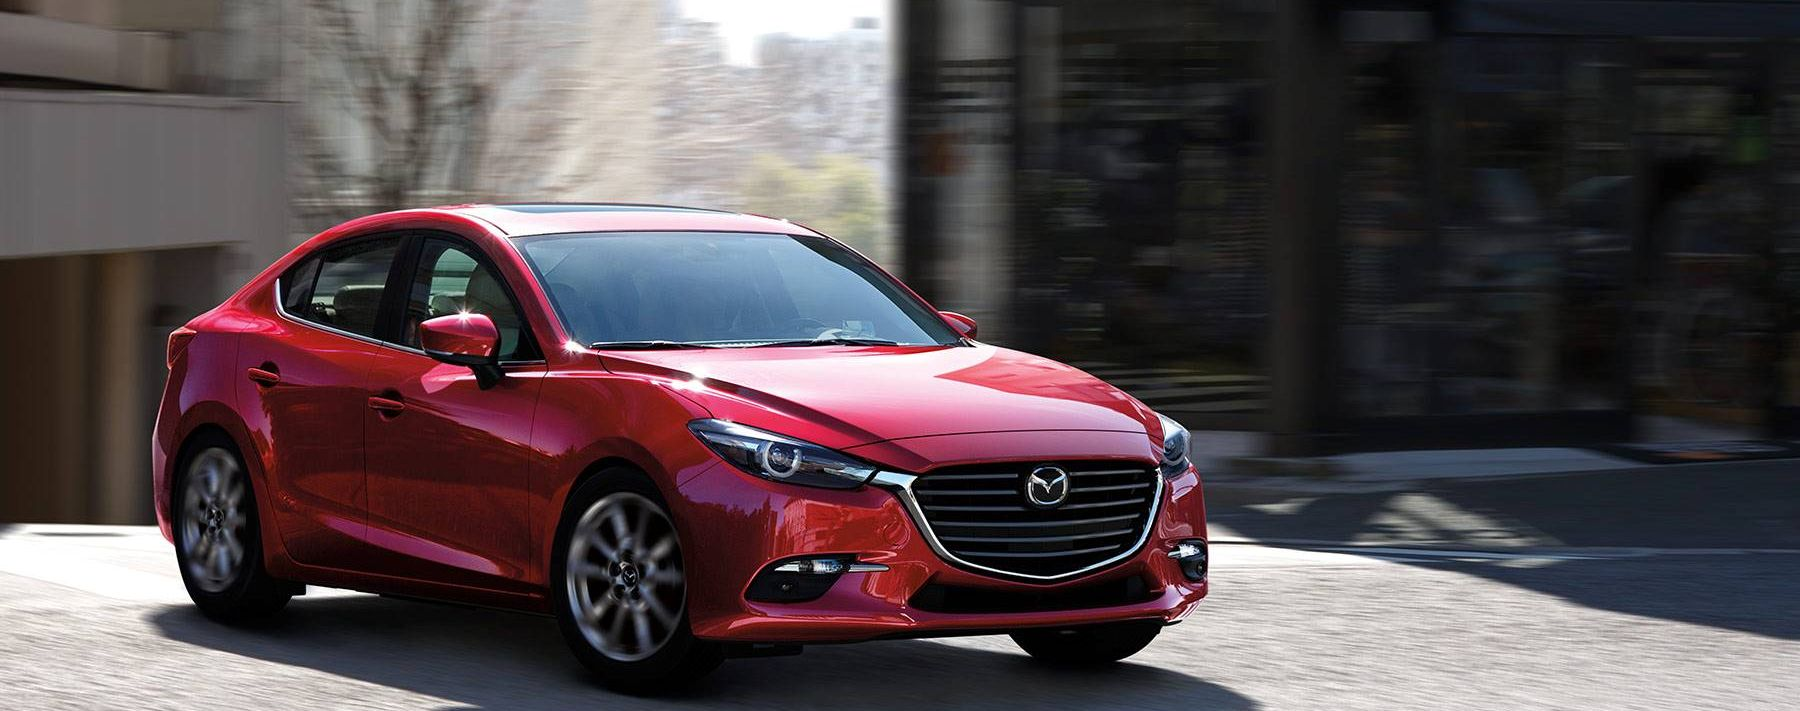 Used Mazda Vehicles for Sale near Columbia, SC